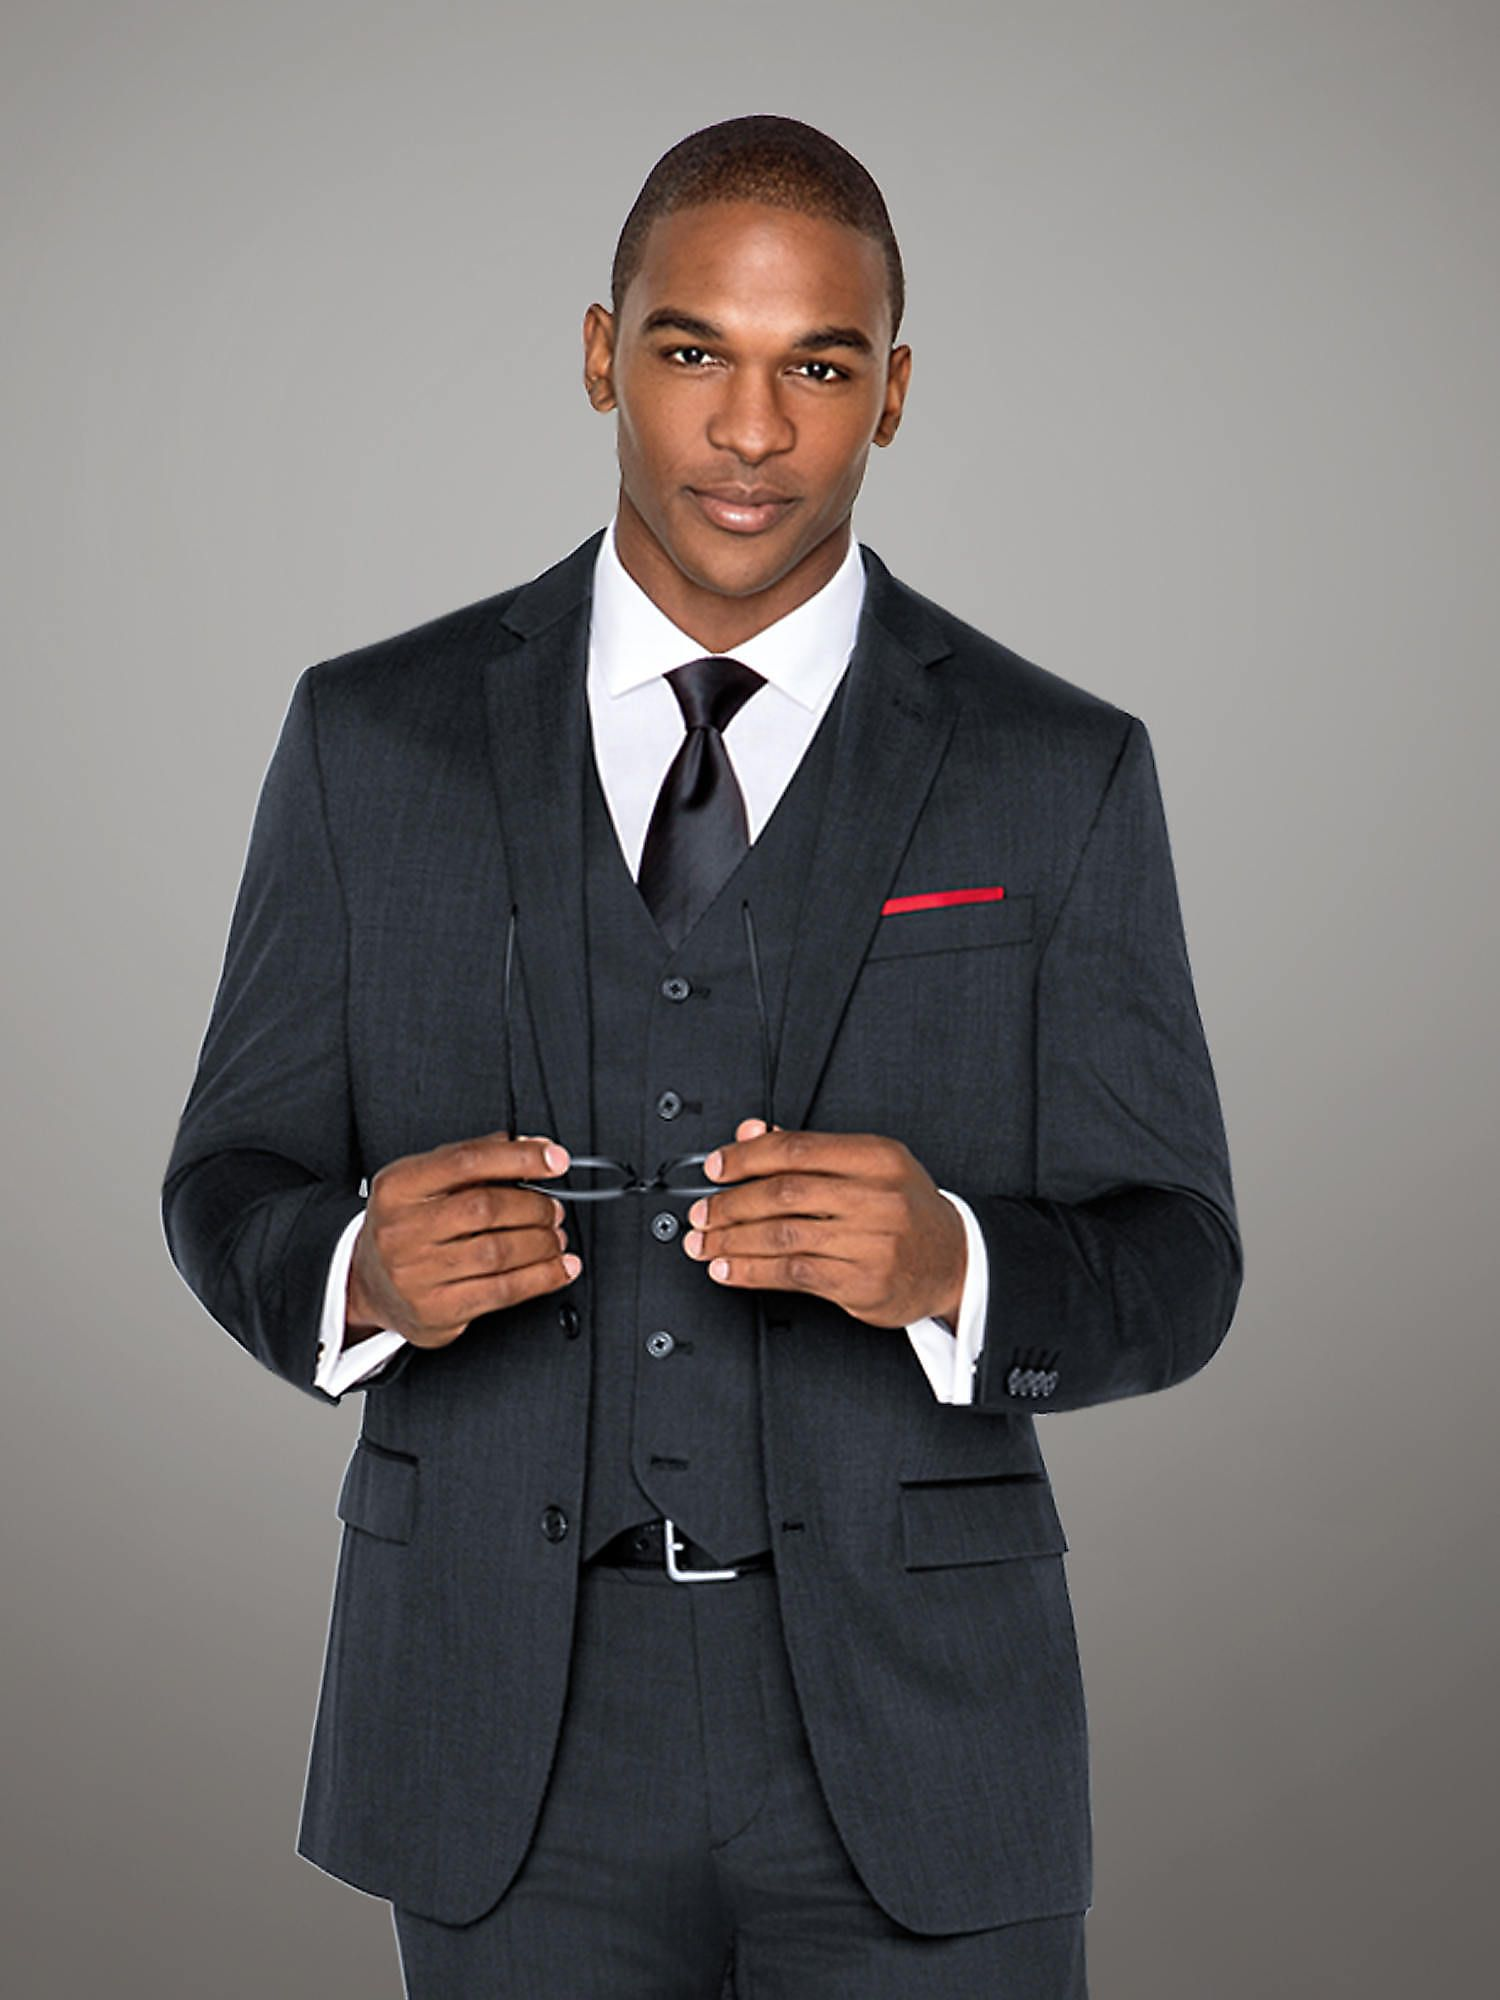 Suits For Weddings Wedding Party Men S Wearhouse Wedding Suits Wedding Suits Men Mens Wearhouse